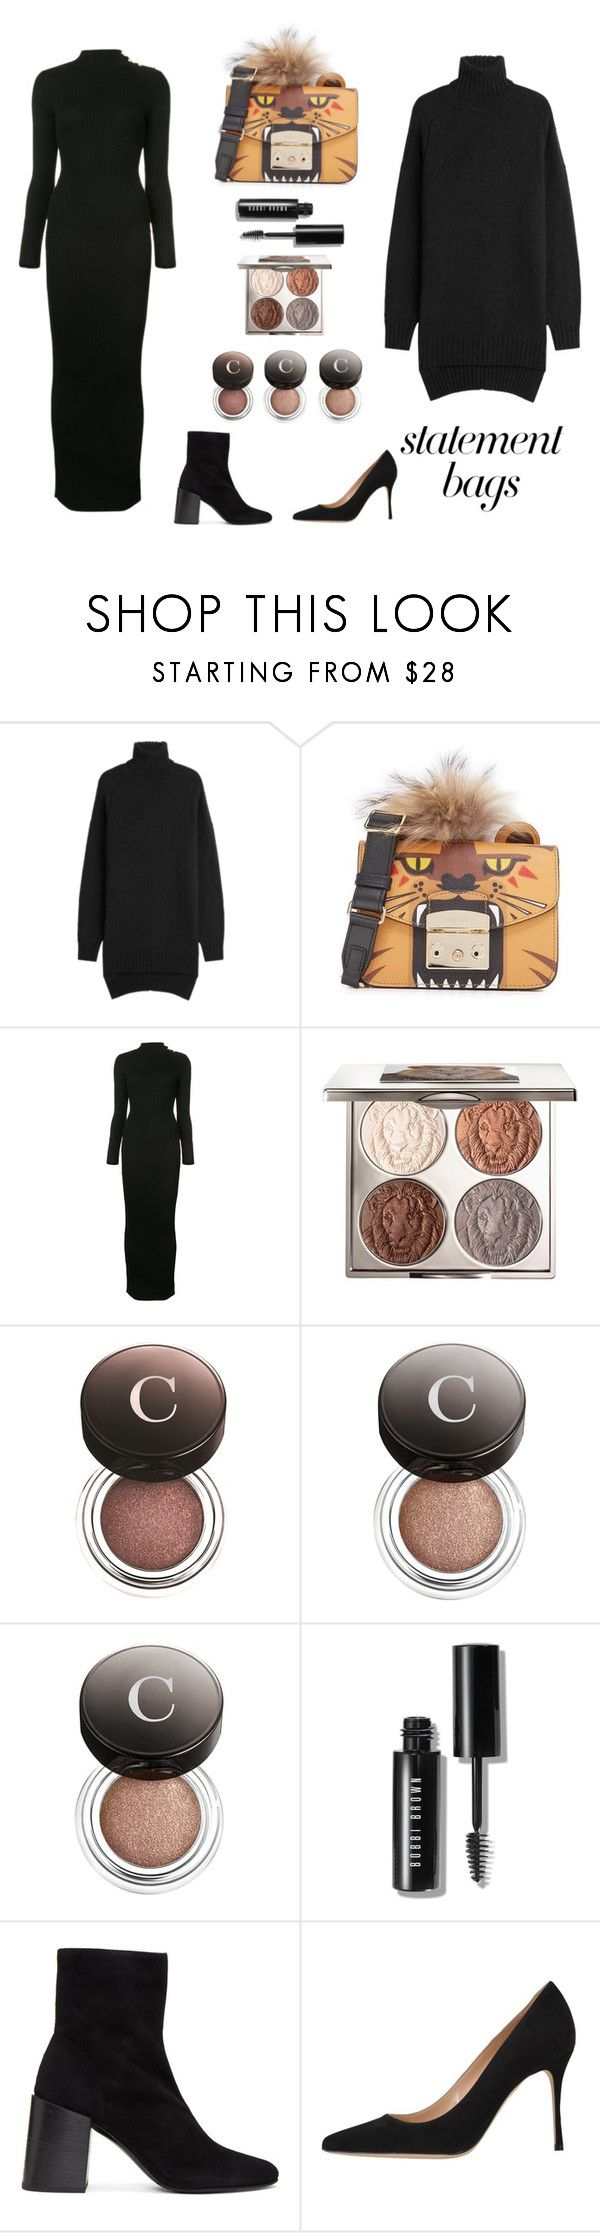 """""""slam book"""" by wednesday-williams ❤ liked on Polyvore featuring Isabel Marant, Furla, Balmain, Chantecaille, Bobbi Brown Cosmetics, Acne Studios, Sergio Rossi, StreetStyle, Fall and statementbags"""